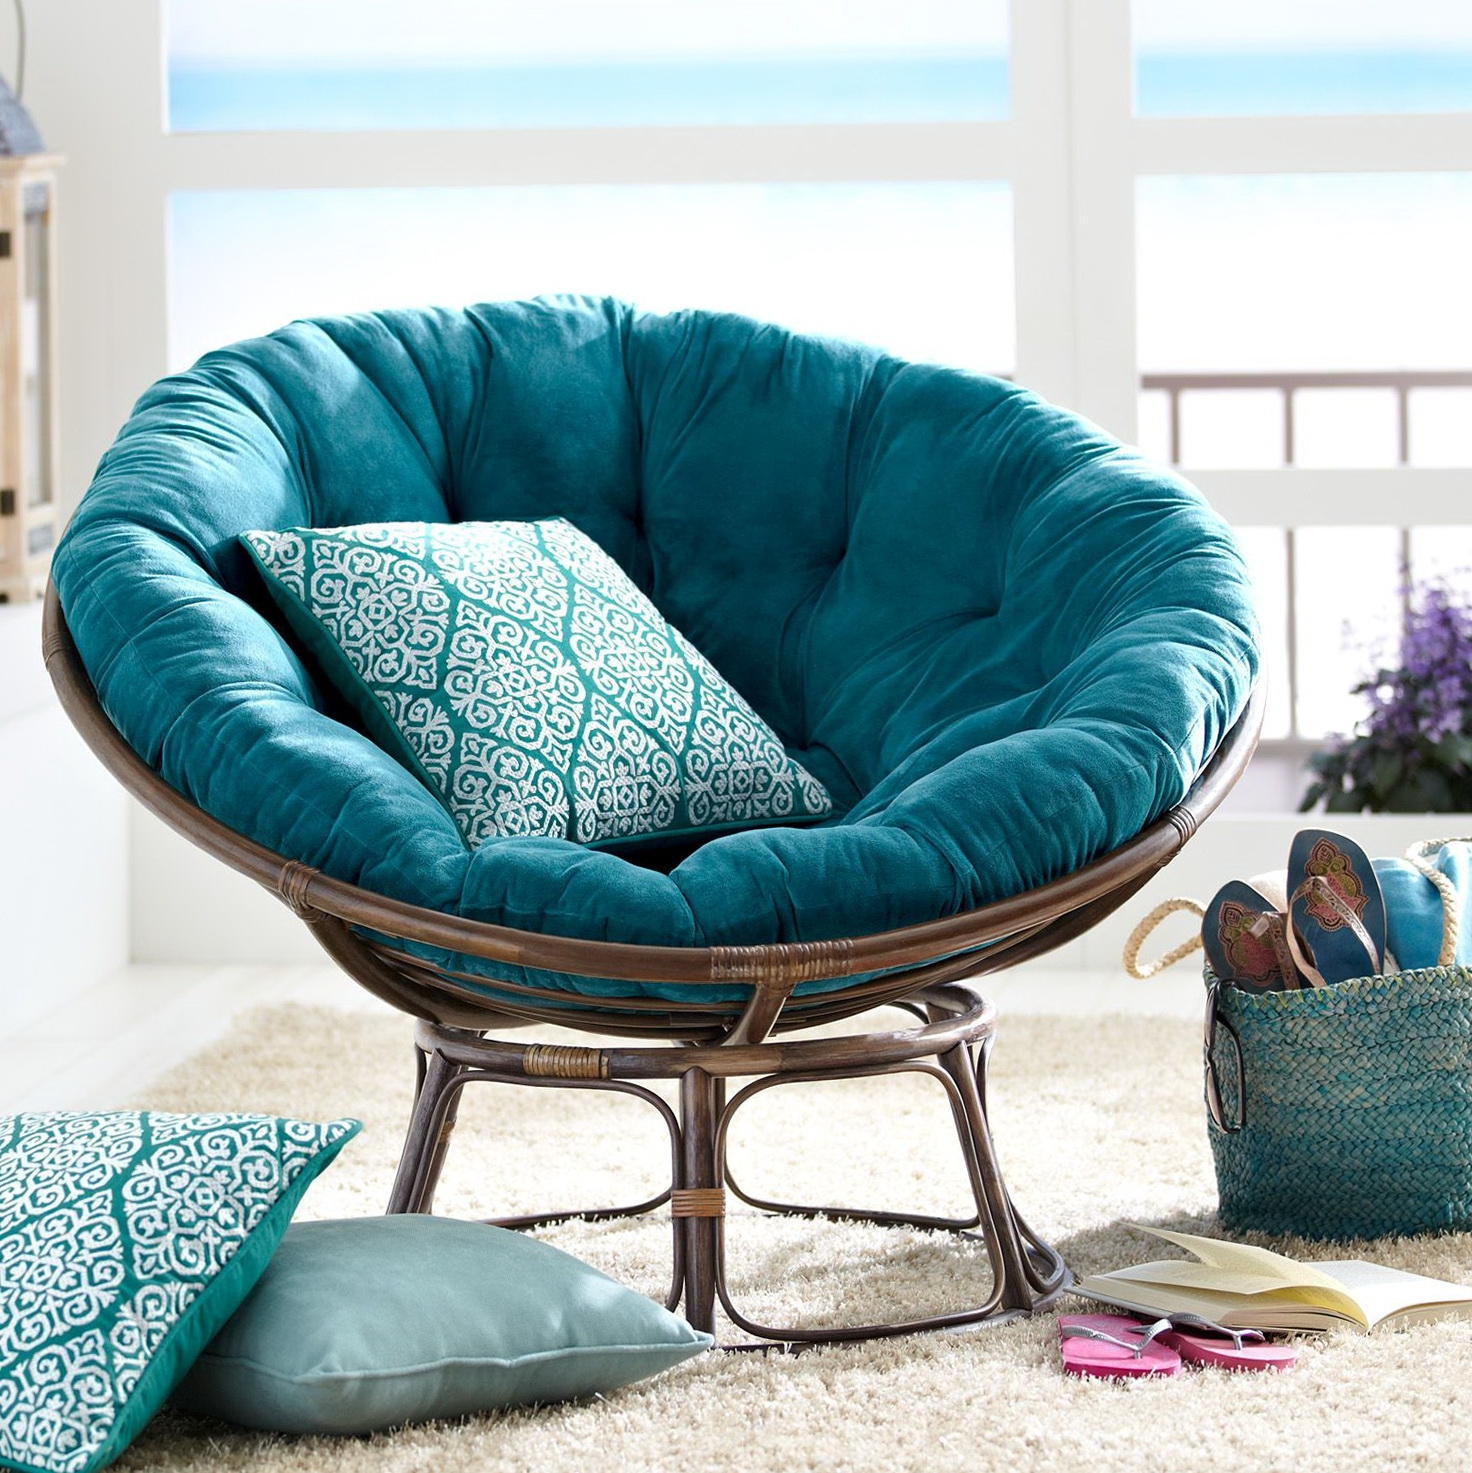 Pier One Ottoman | Pier One Wicker Furniture | Pier 1 Imports Canada Furniture